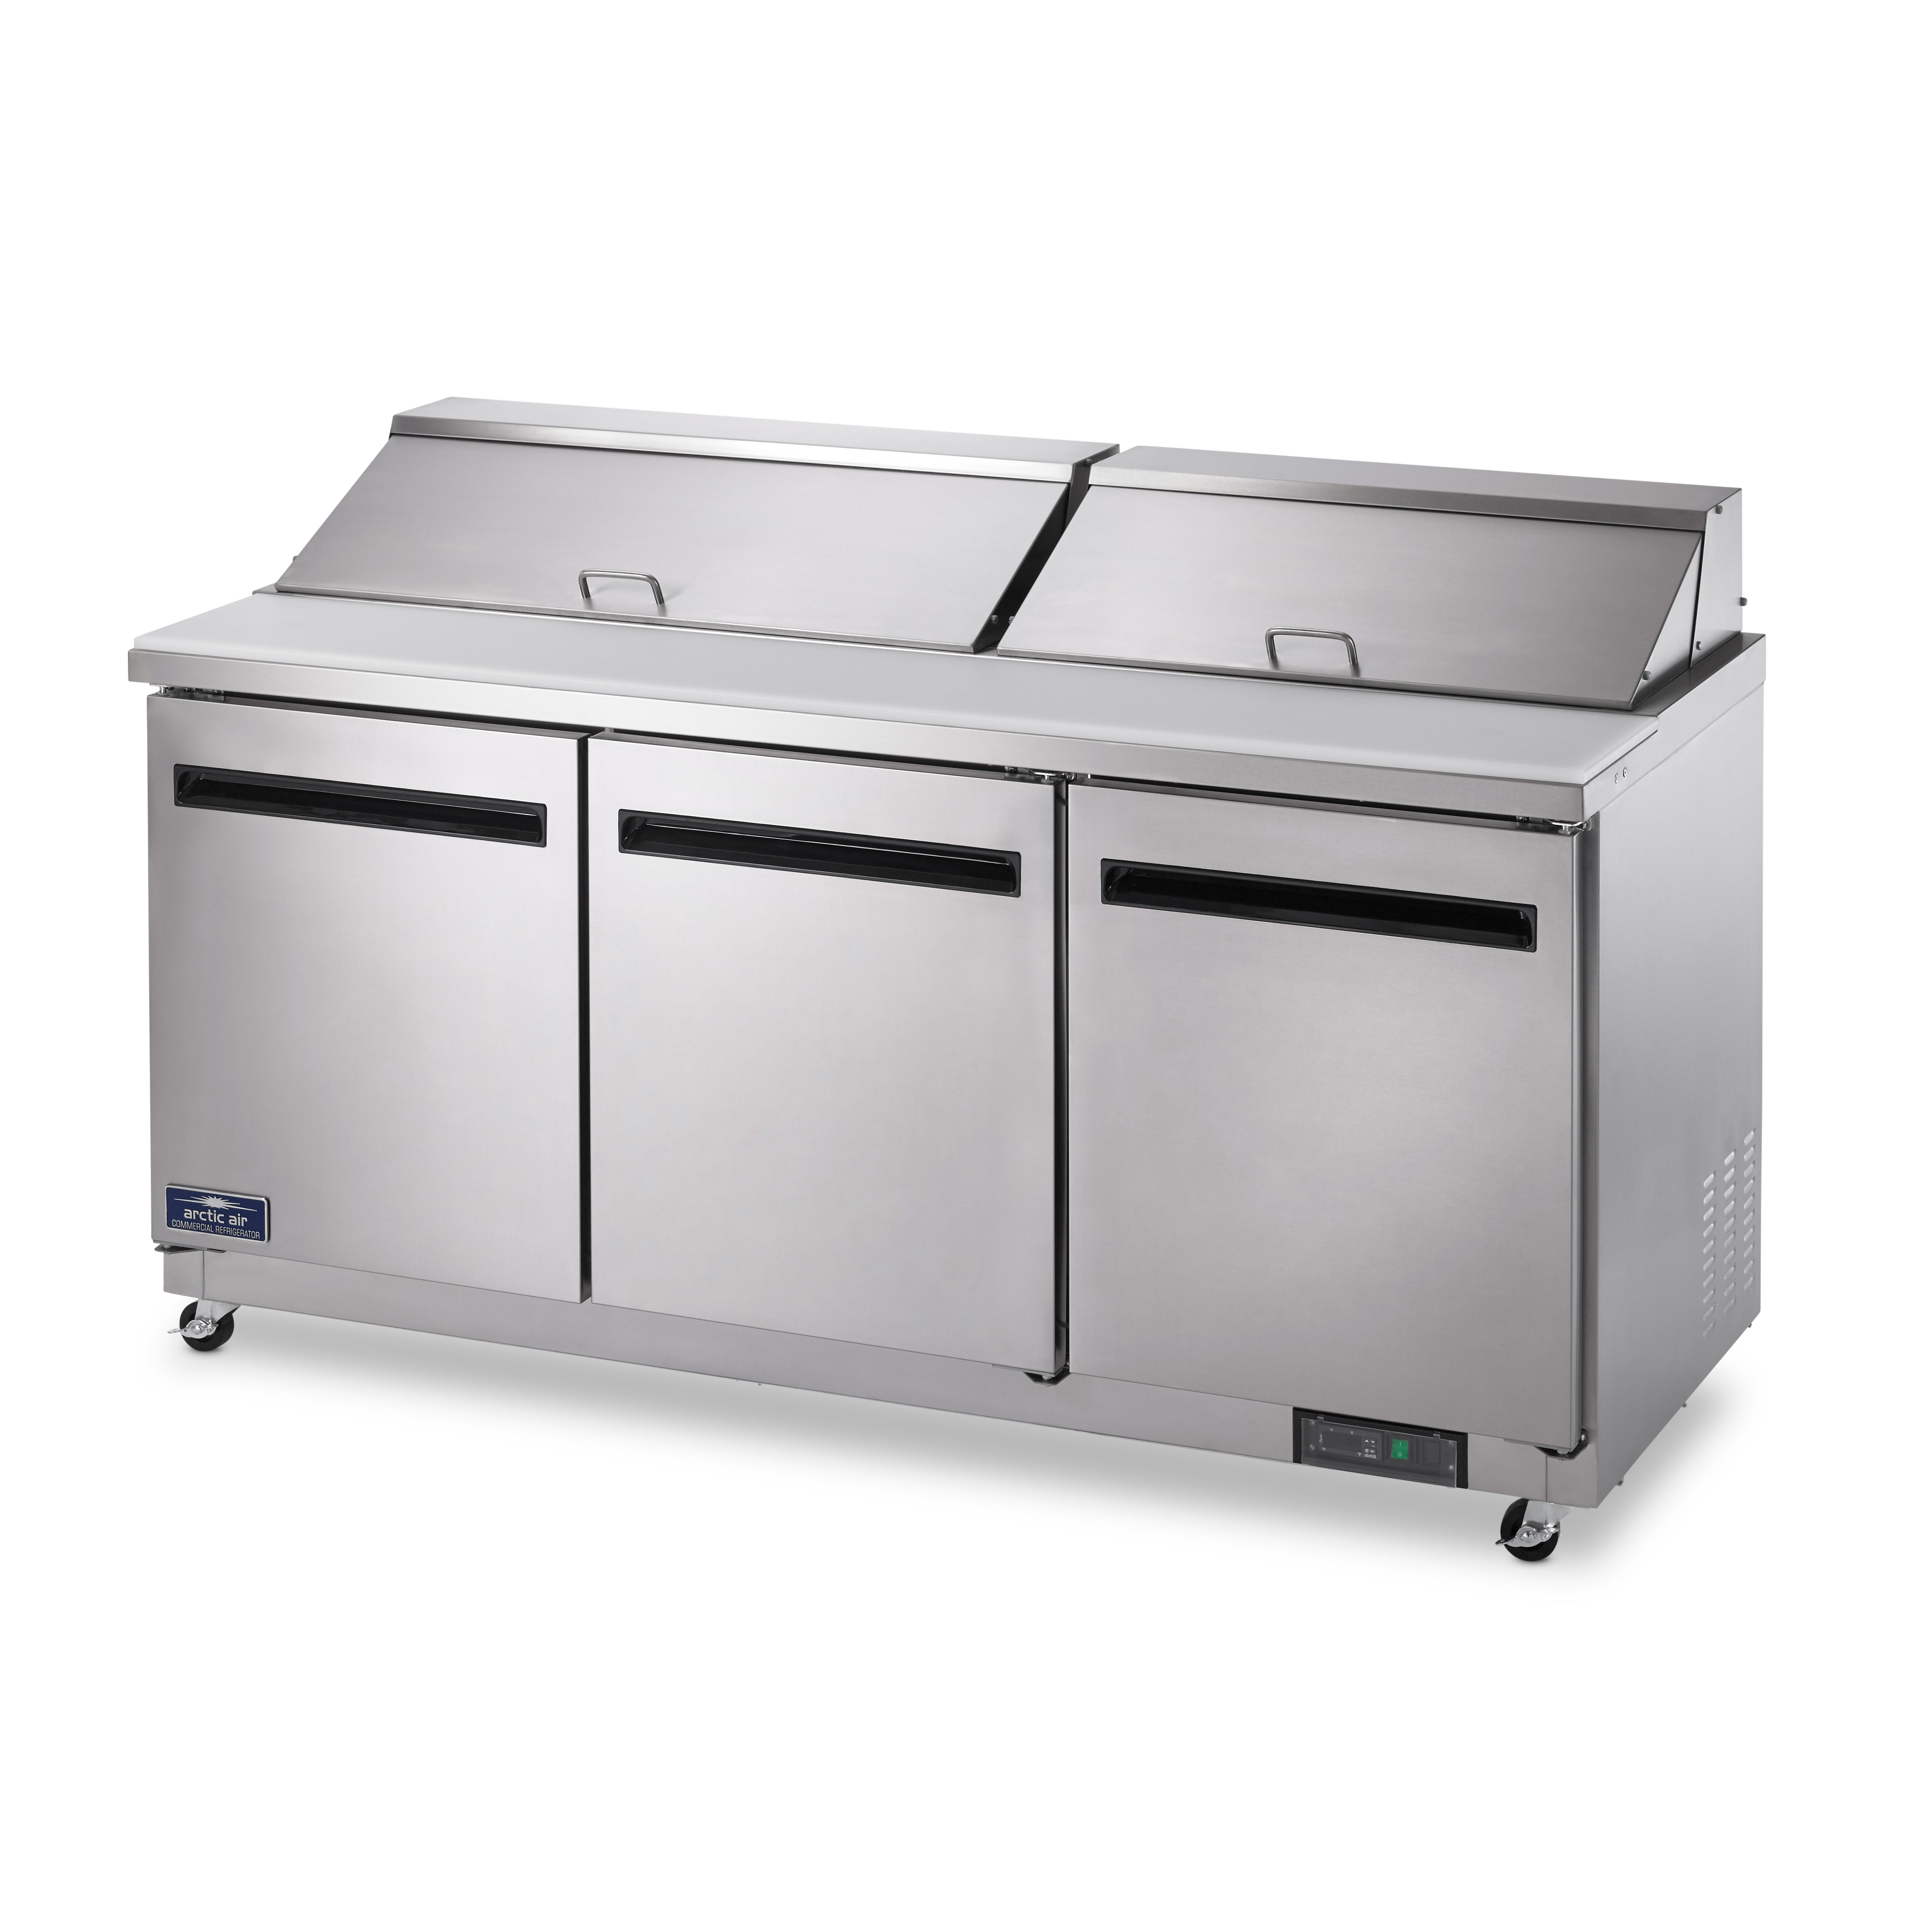 Arctic Air AMT72R refrigerated counter, mega top sandwich / salad unit